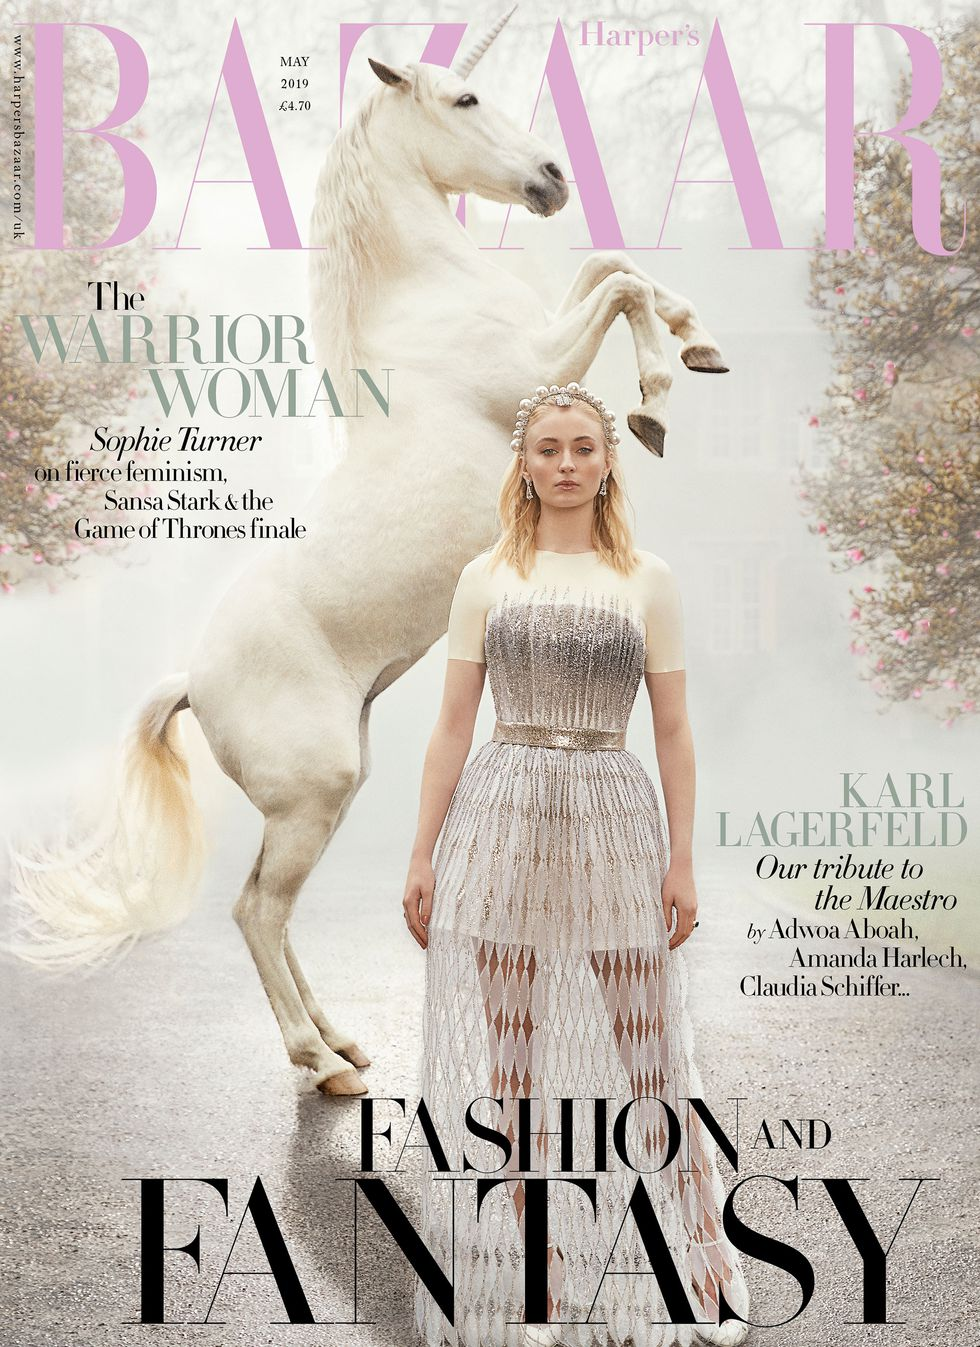 Sophie Turner graces Harper's Bazaar cover